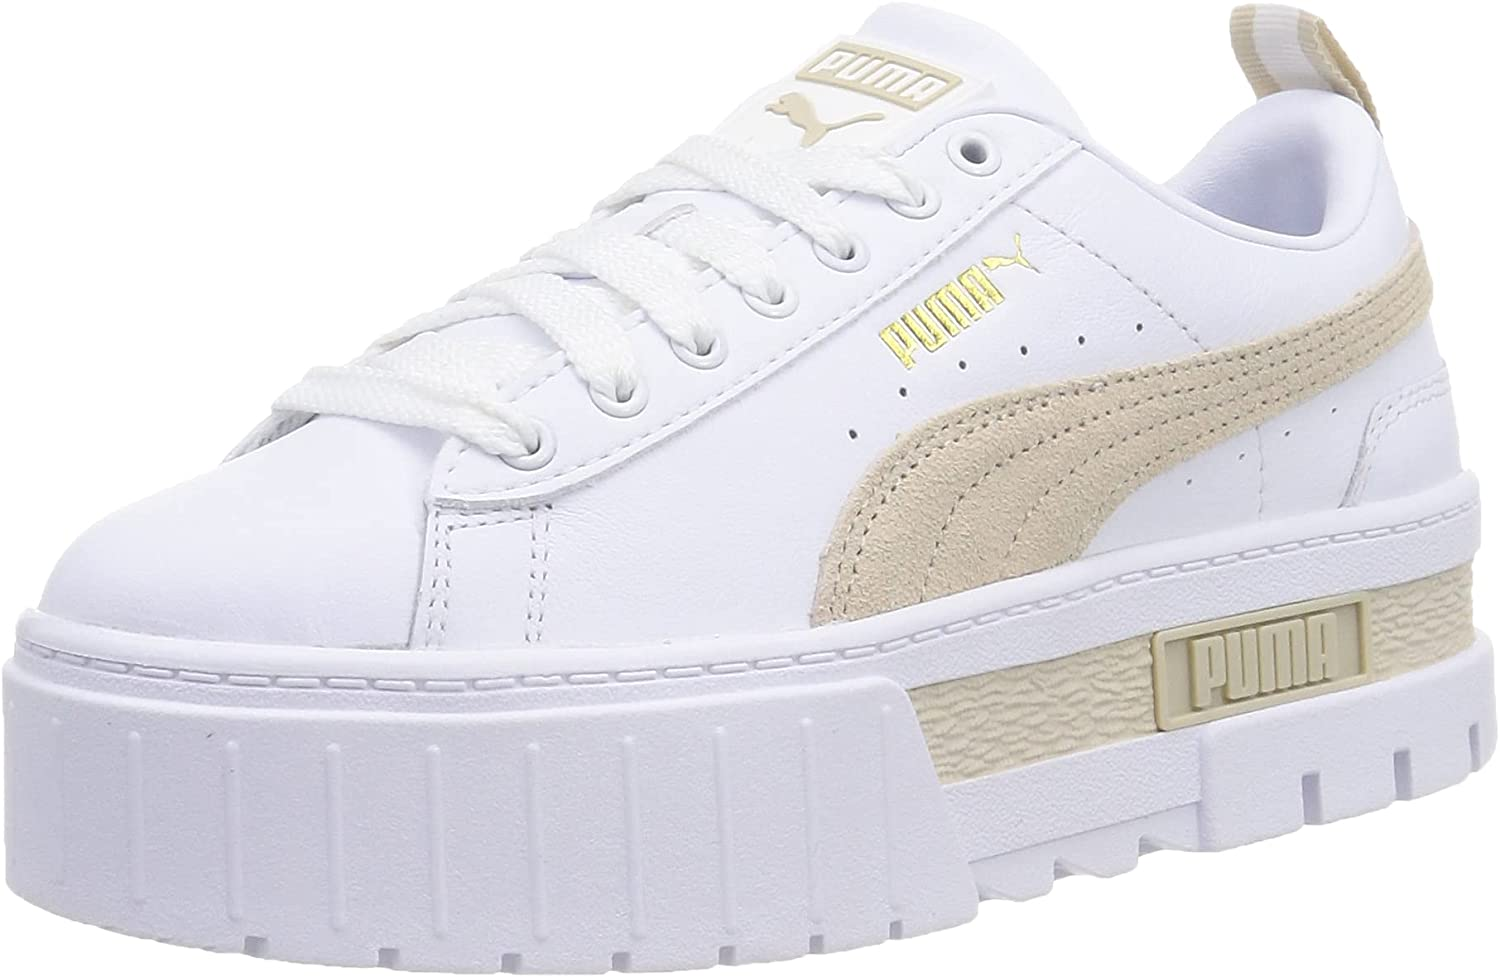 PUMA Safety and trust Surprise price Womens Mayze Sneakers White Court